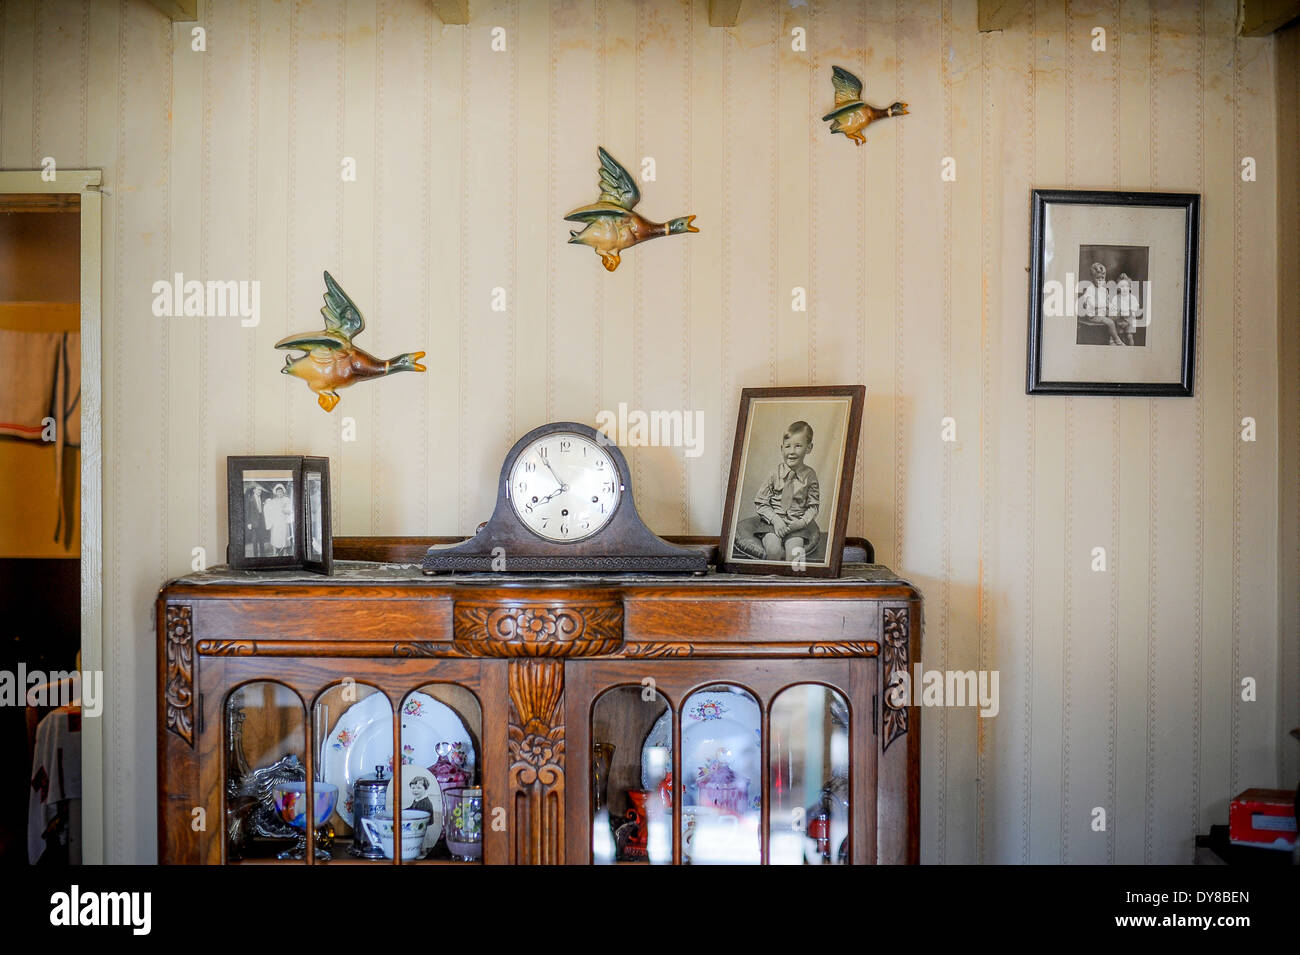 Flying Ducks On Vintage Wallpaper In A Second World War Living Room Stock Photo Royalty Free